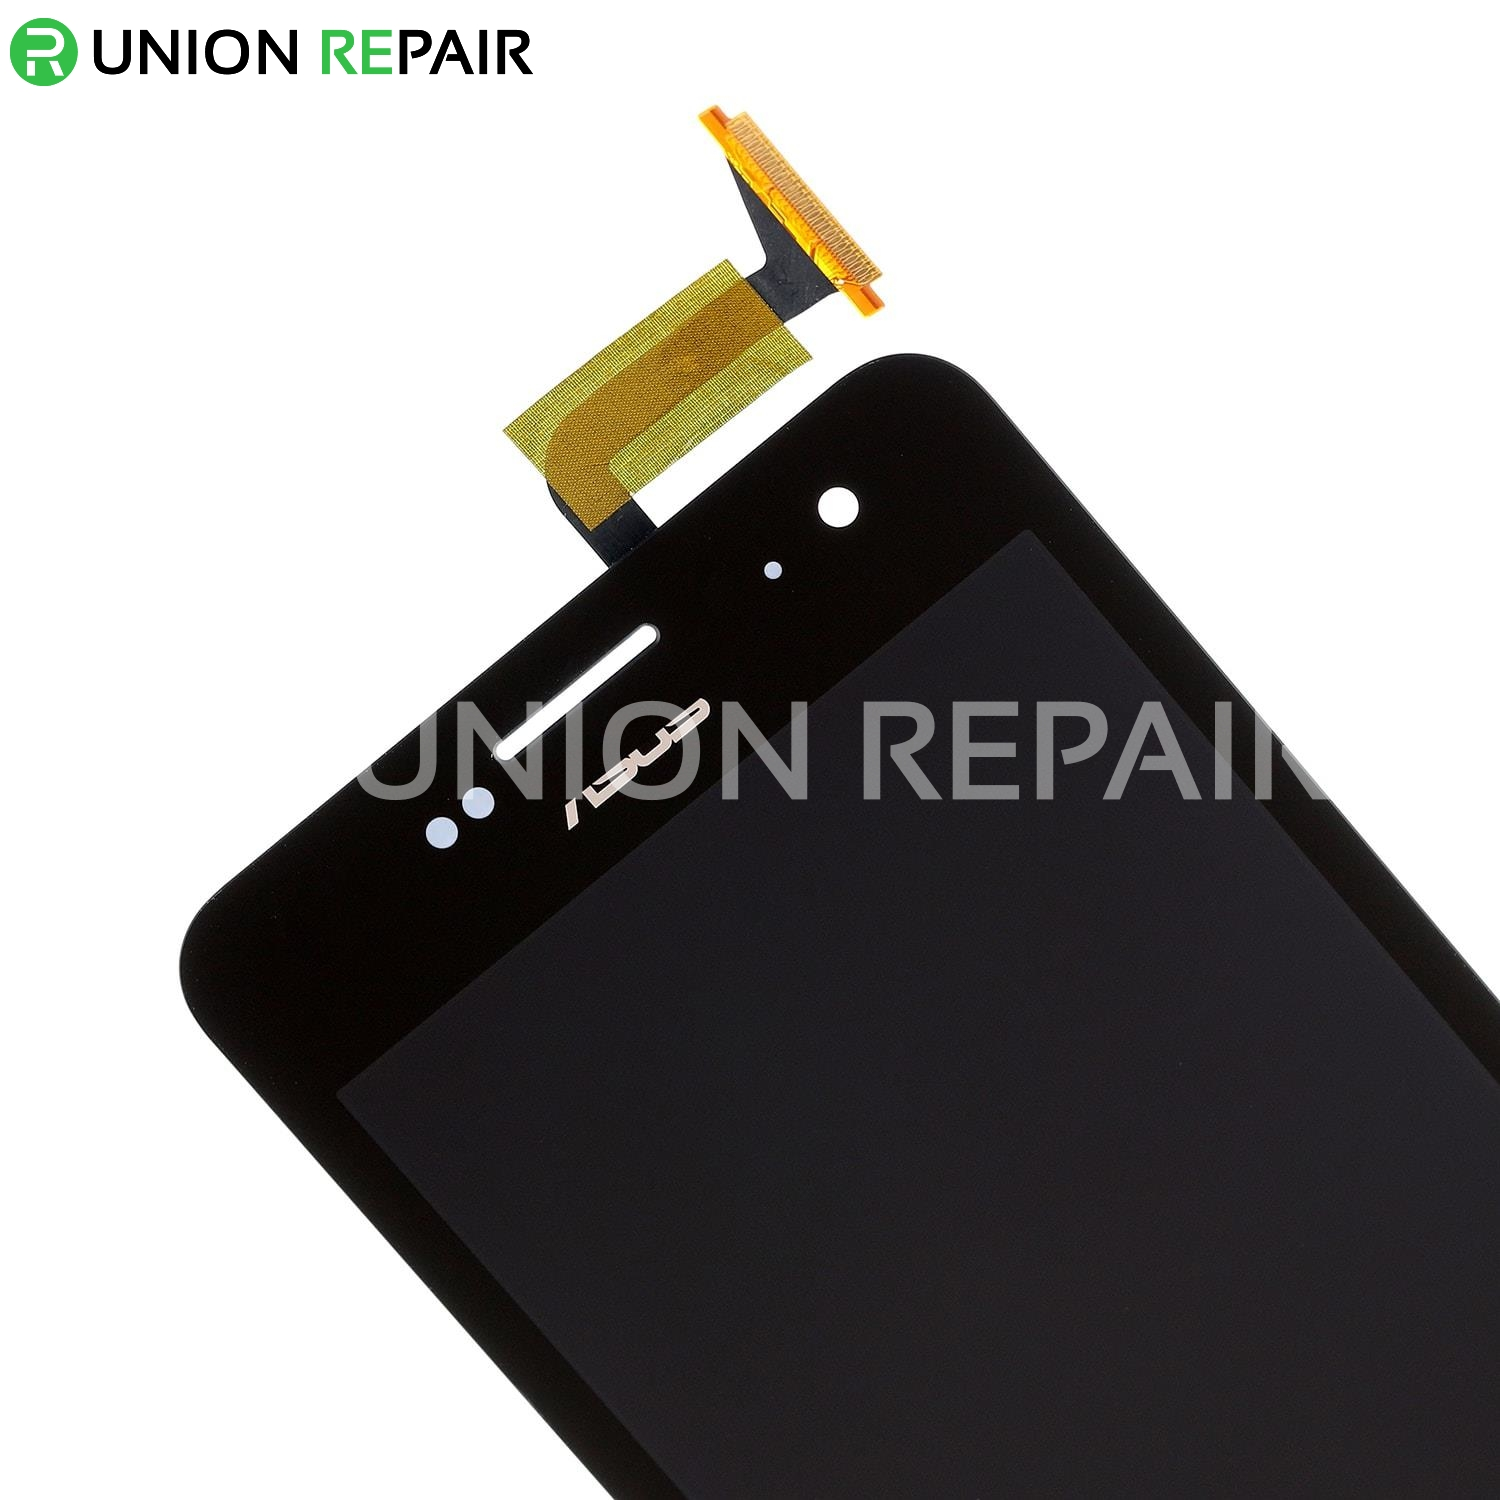 Replacement For Asus Zenfone 5 A500CG LCD Screen With Digitizer Assembly